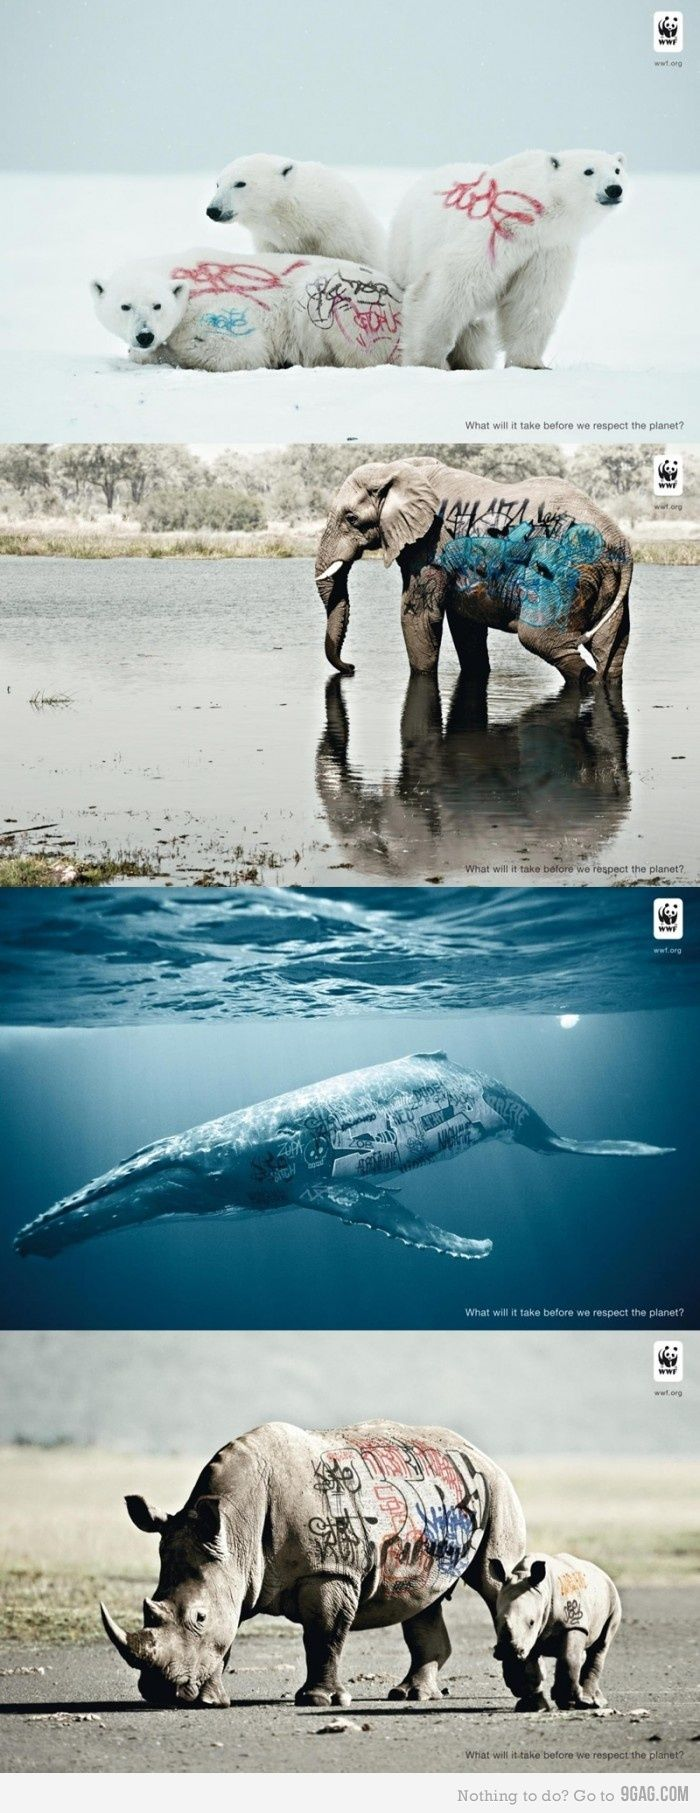 Creative WWF ad What will it take before we respect the